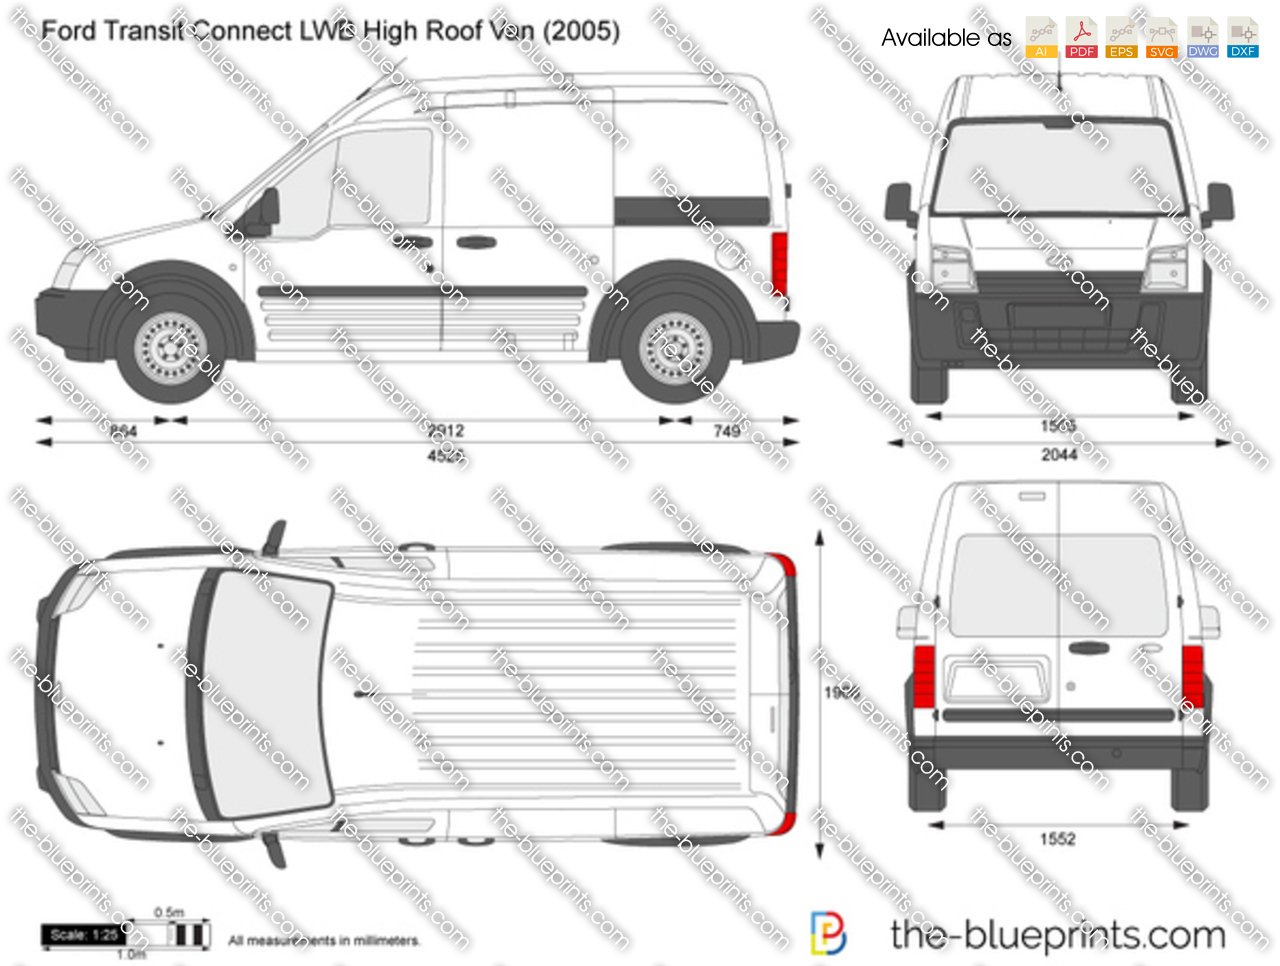 46b0563dda Ford Transit Connect LWB High Roof Van vector drawing